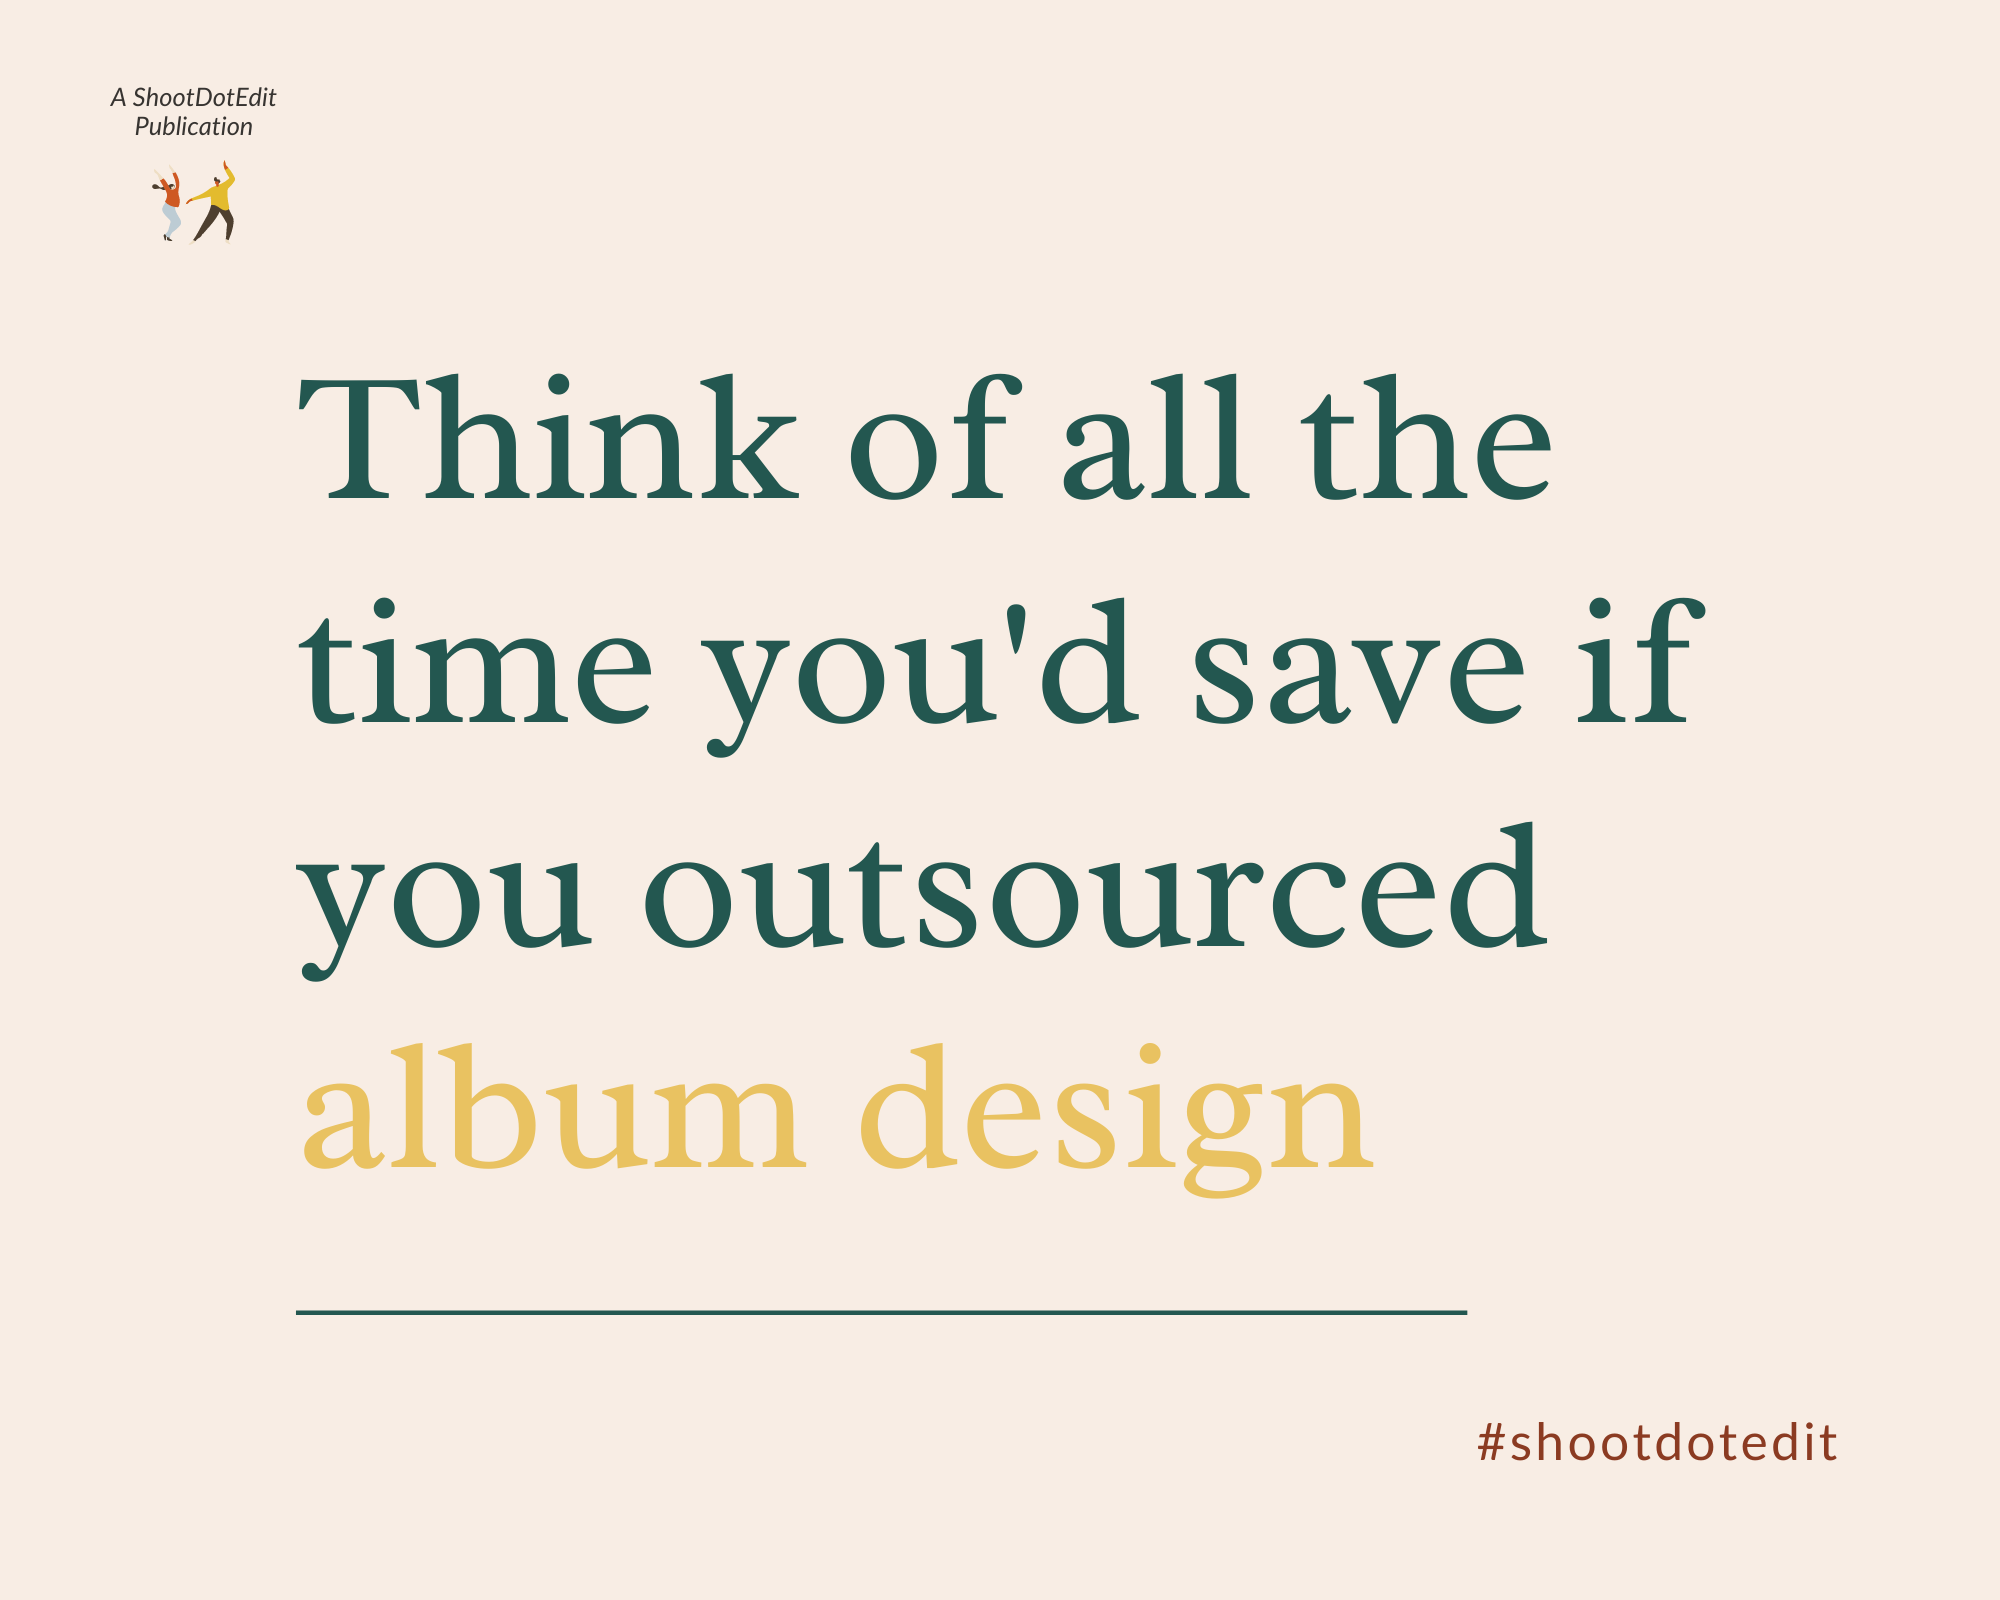 Infographic stating think of all the time you would save if you outsourced album design